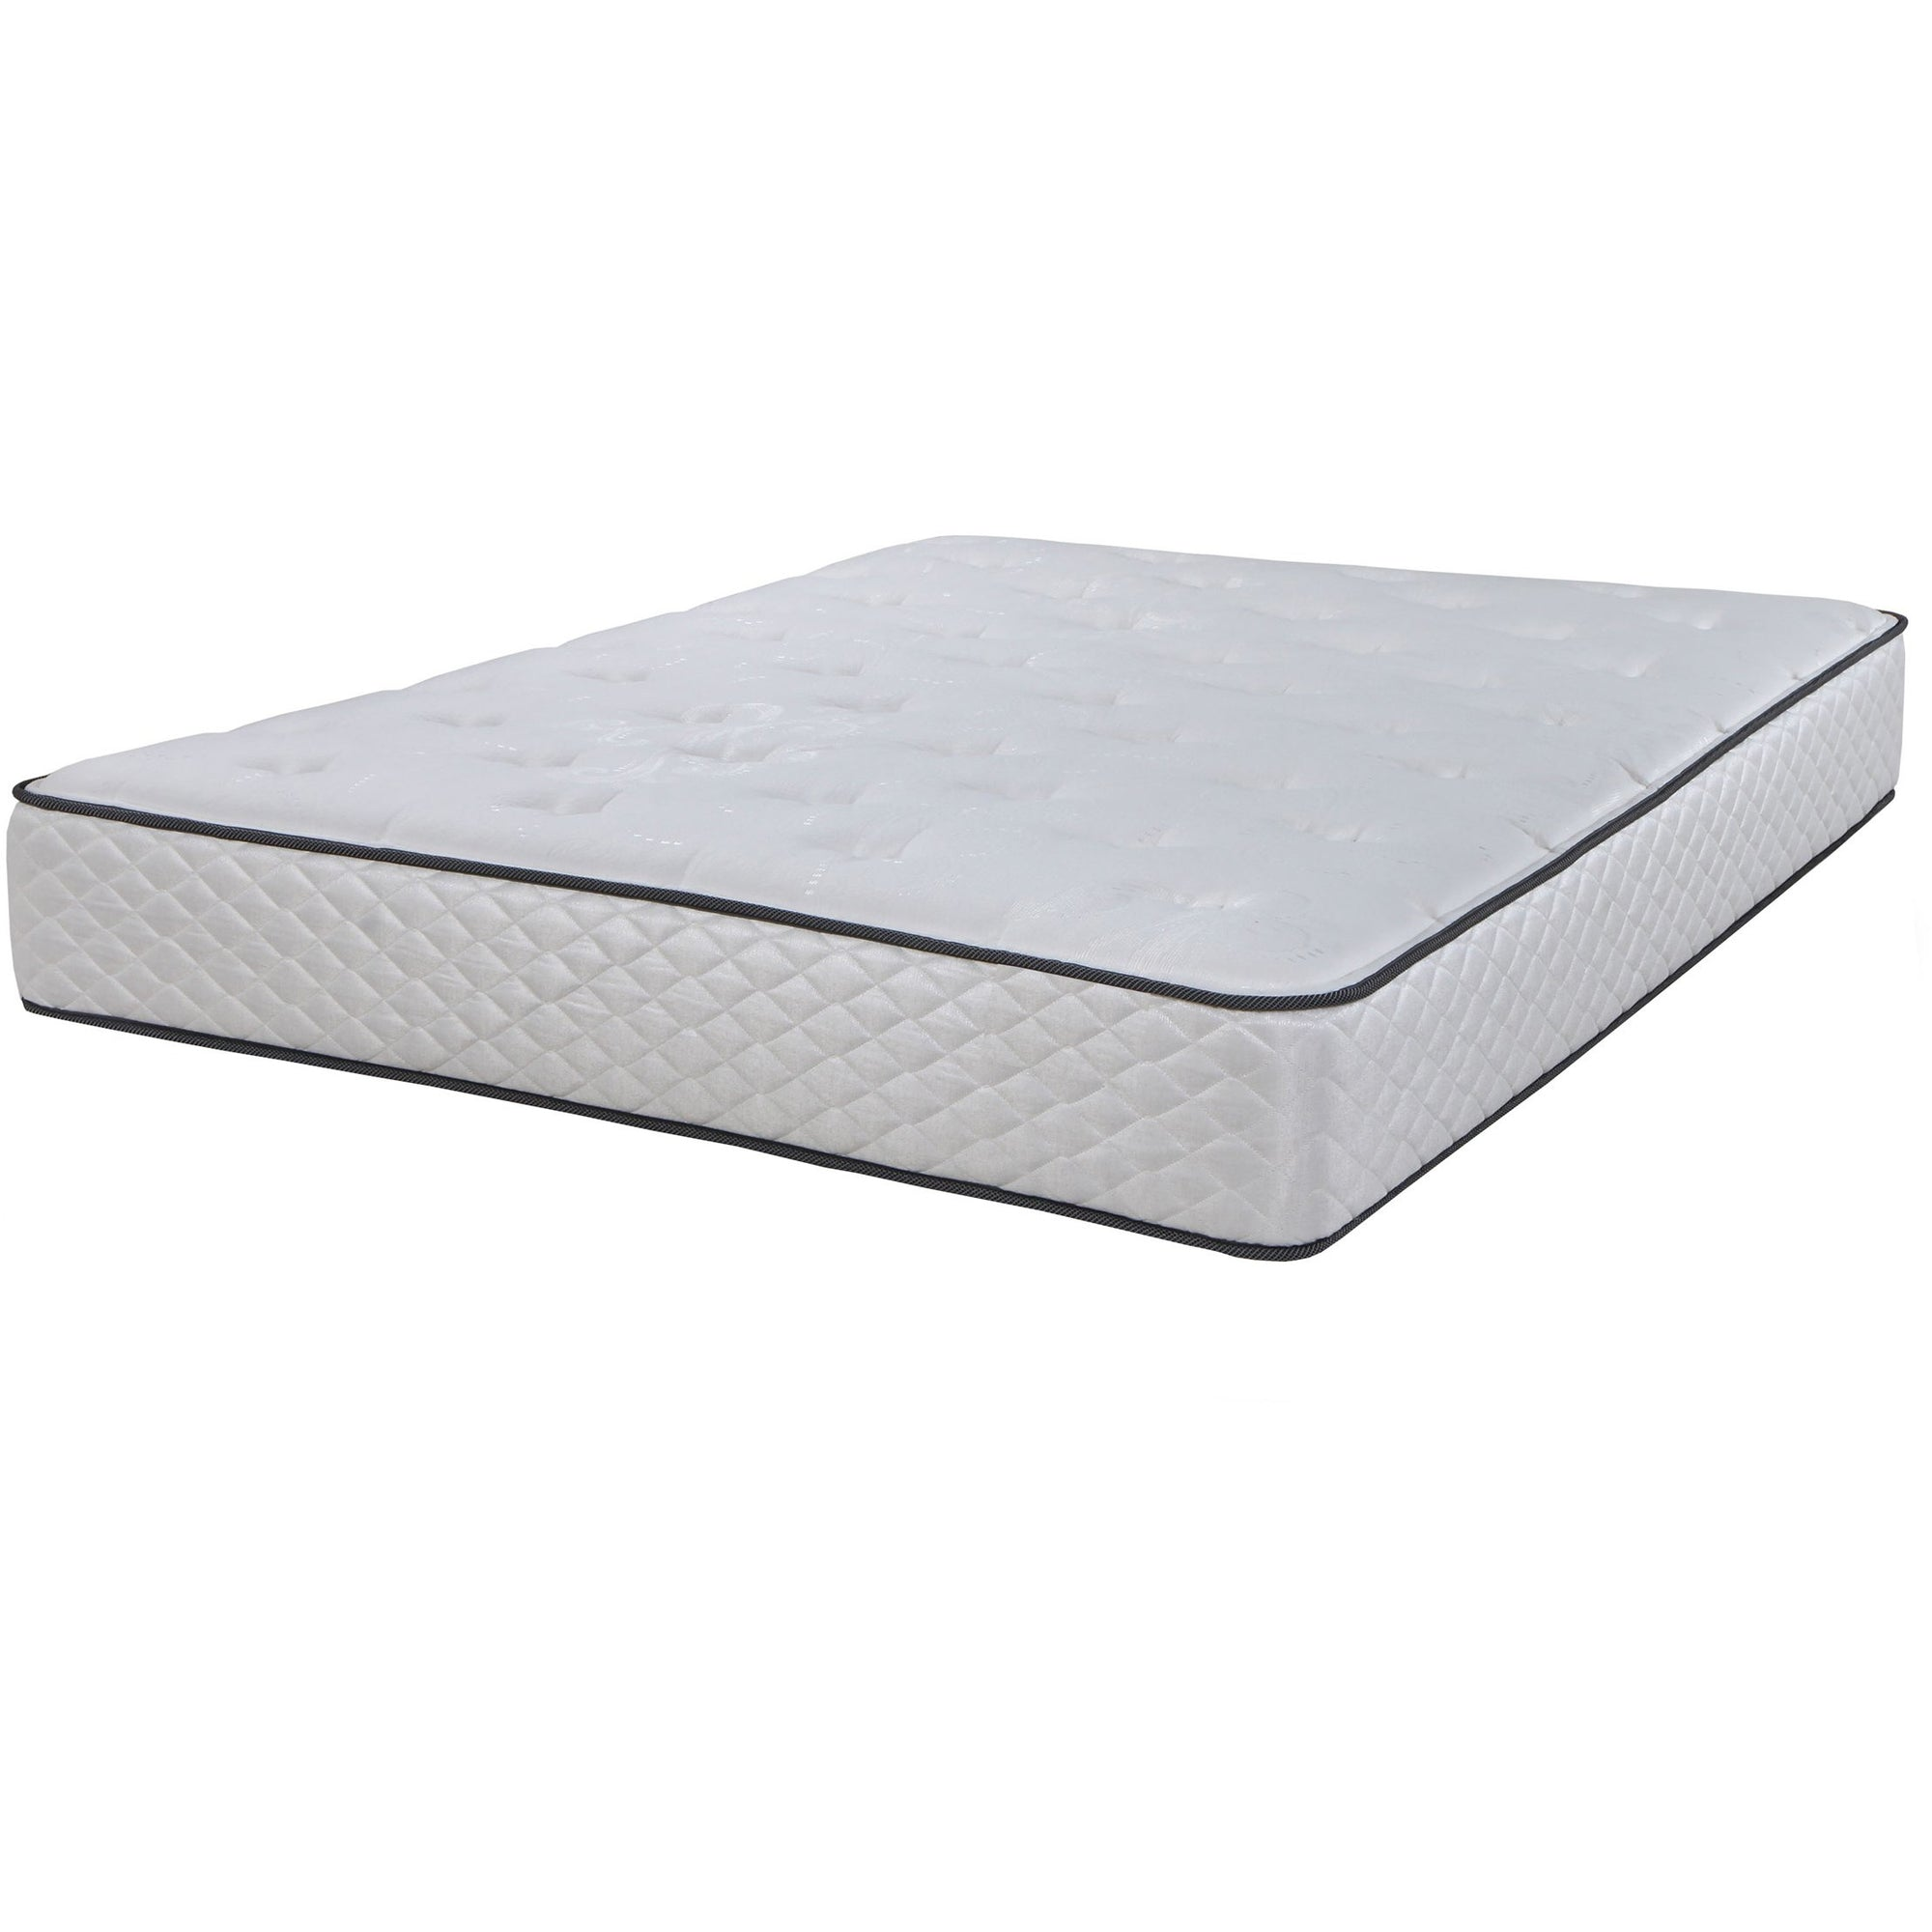 Carytown Plush Mattress